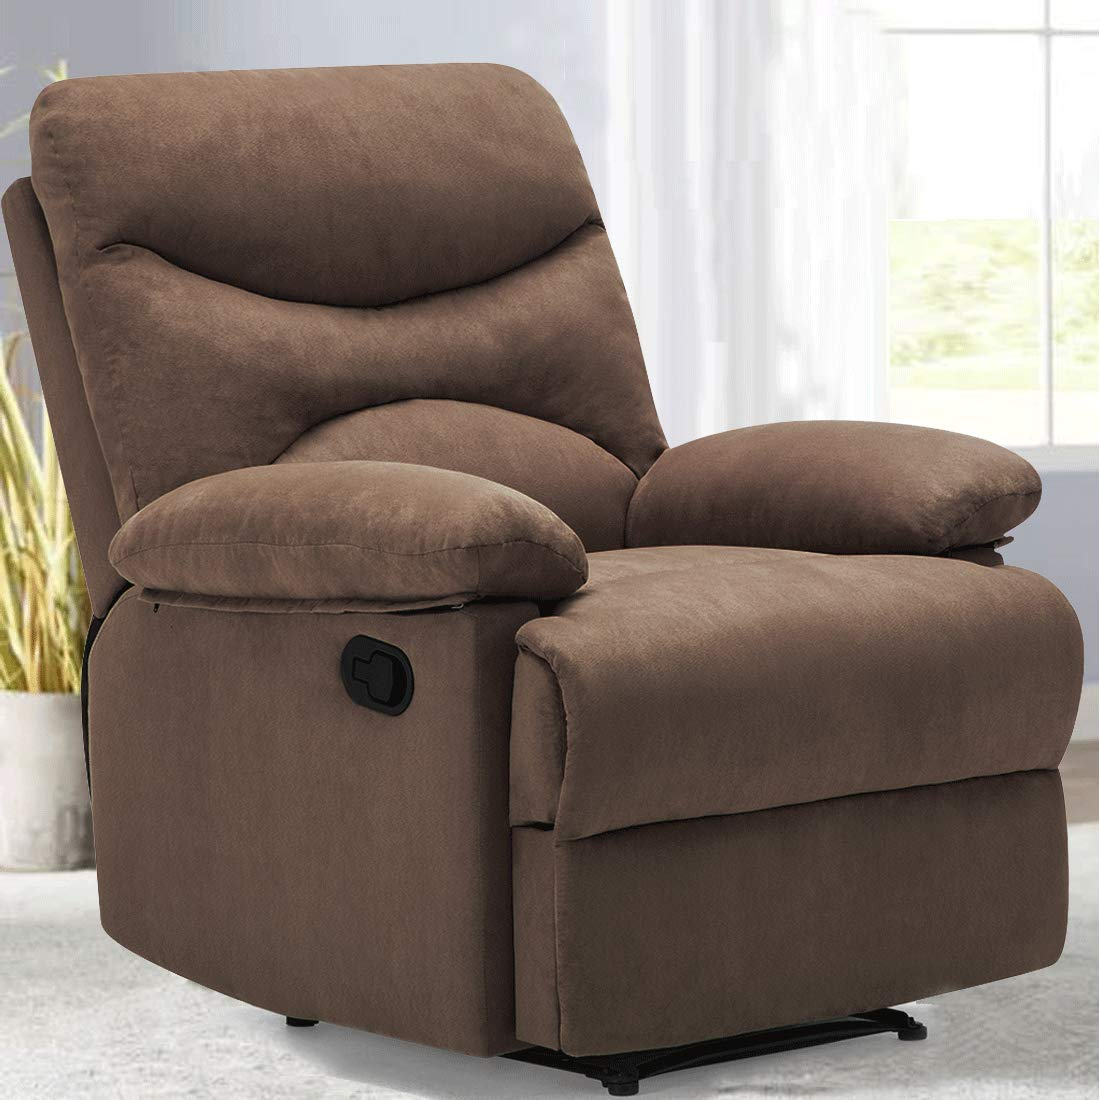 FRIVITY Chair Recliner, Microfiber Ergonomic Sofa Living Room Sofa with Heated Control Home Theater Seating Fit for Elder Age, Brown by Frivity